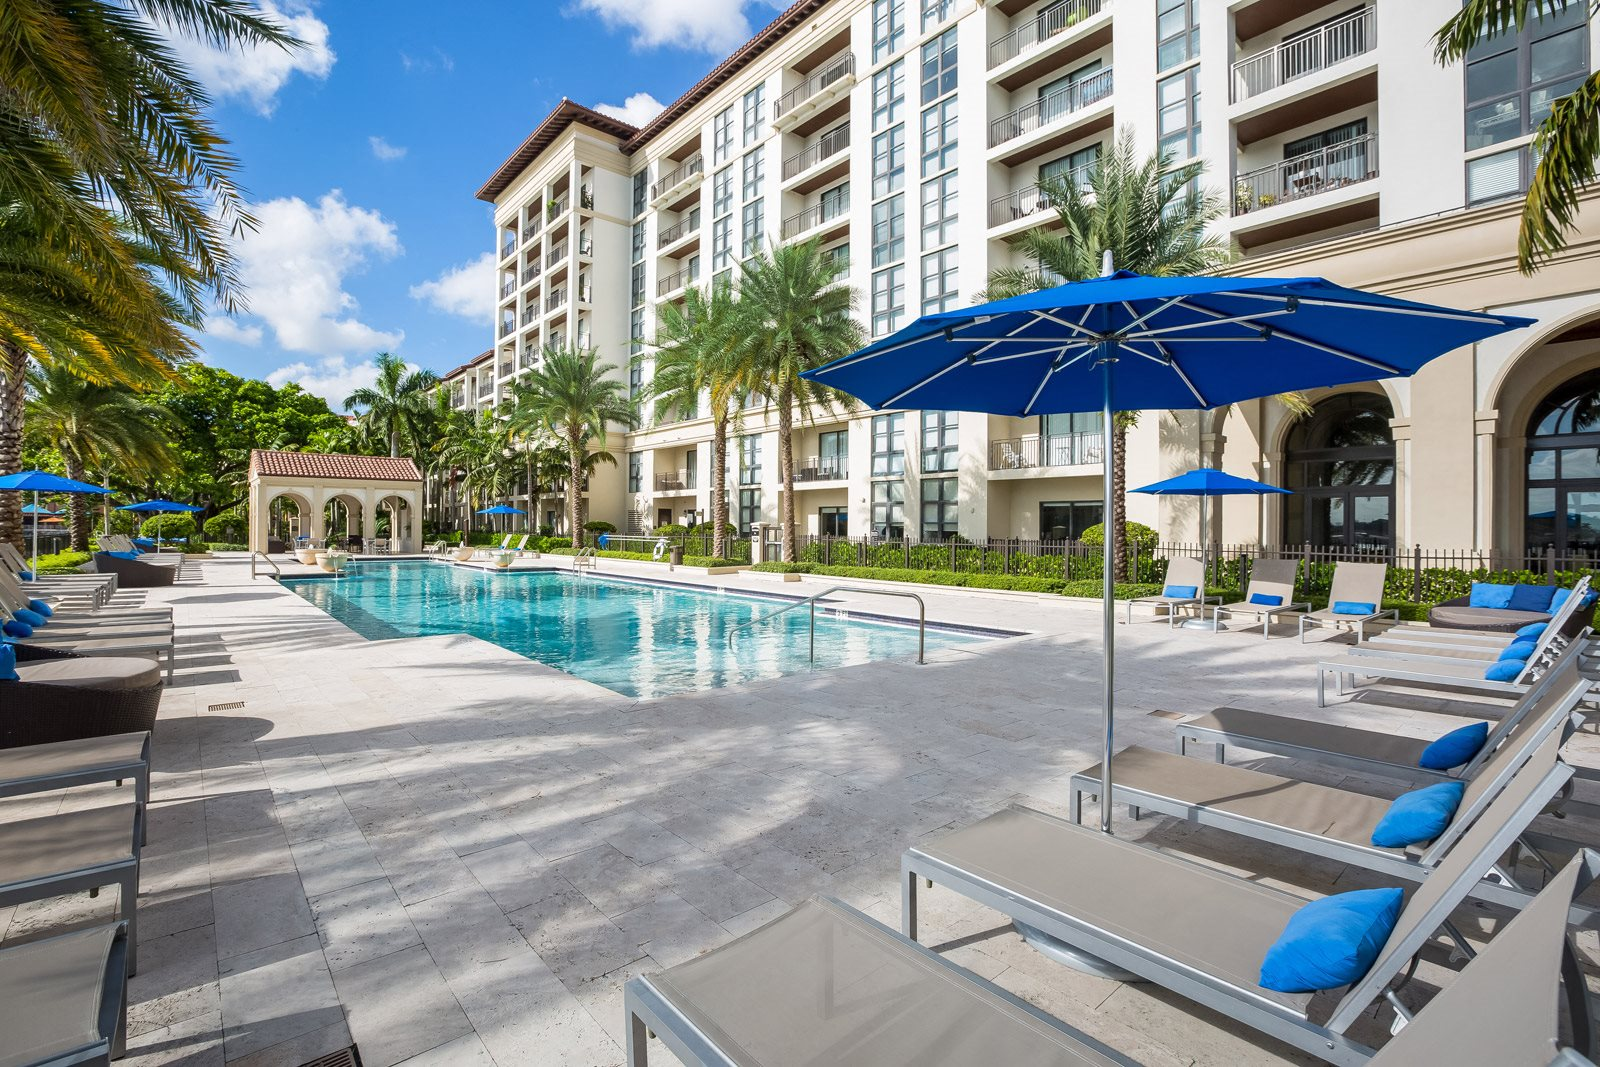 Sundeck and Lounge Chairs by Resort-Style Pool at Windsor at Doral, 4401 NW 87th Avenue, Doral